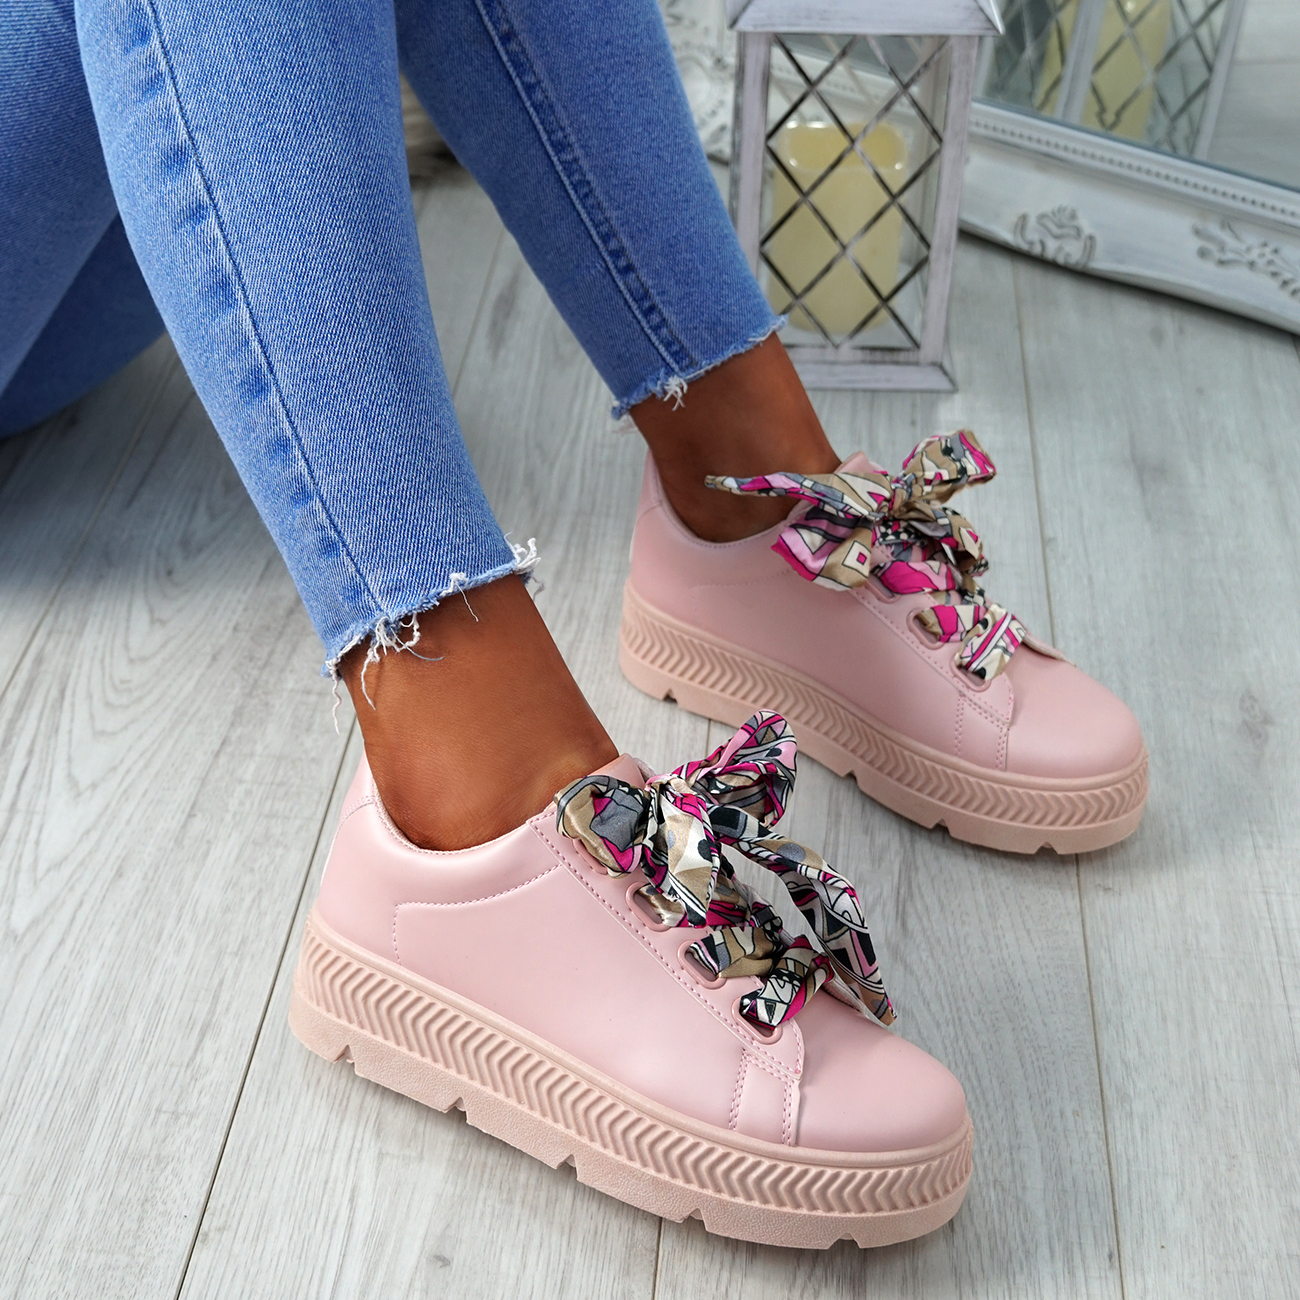 WOMENS-LADIES-RIBBON-LACE-UP-TRAINERS-PLIMSOLLS-COMFY-SNEAKERS-FASHION-SHOES